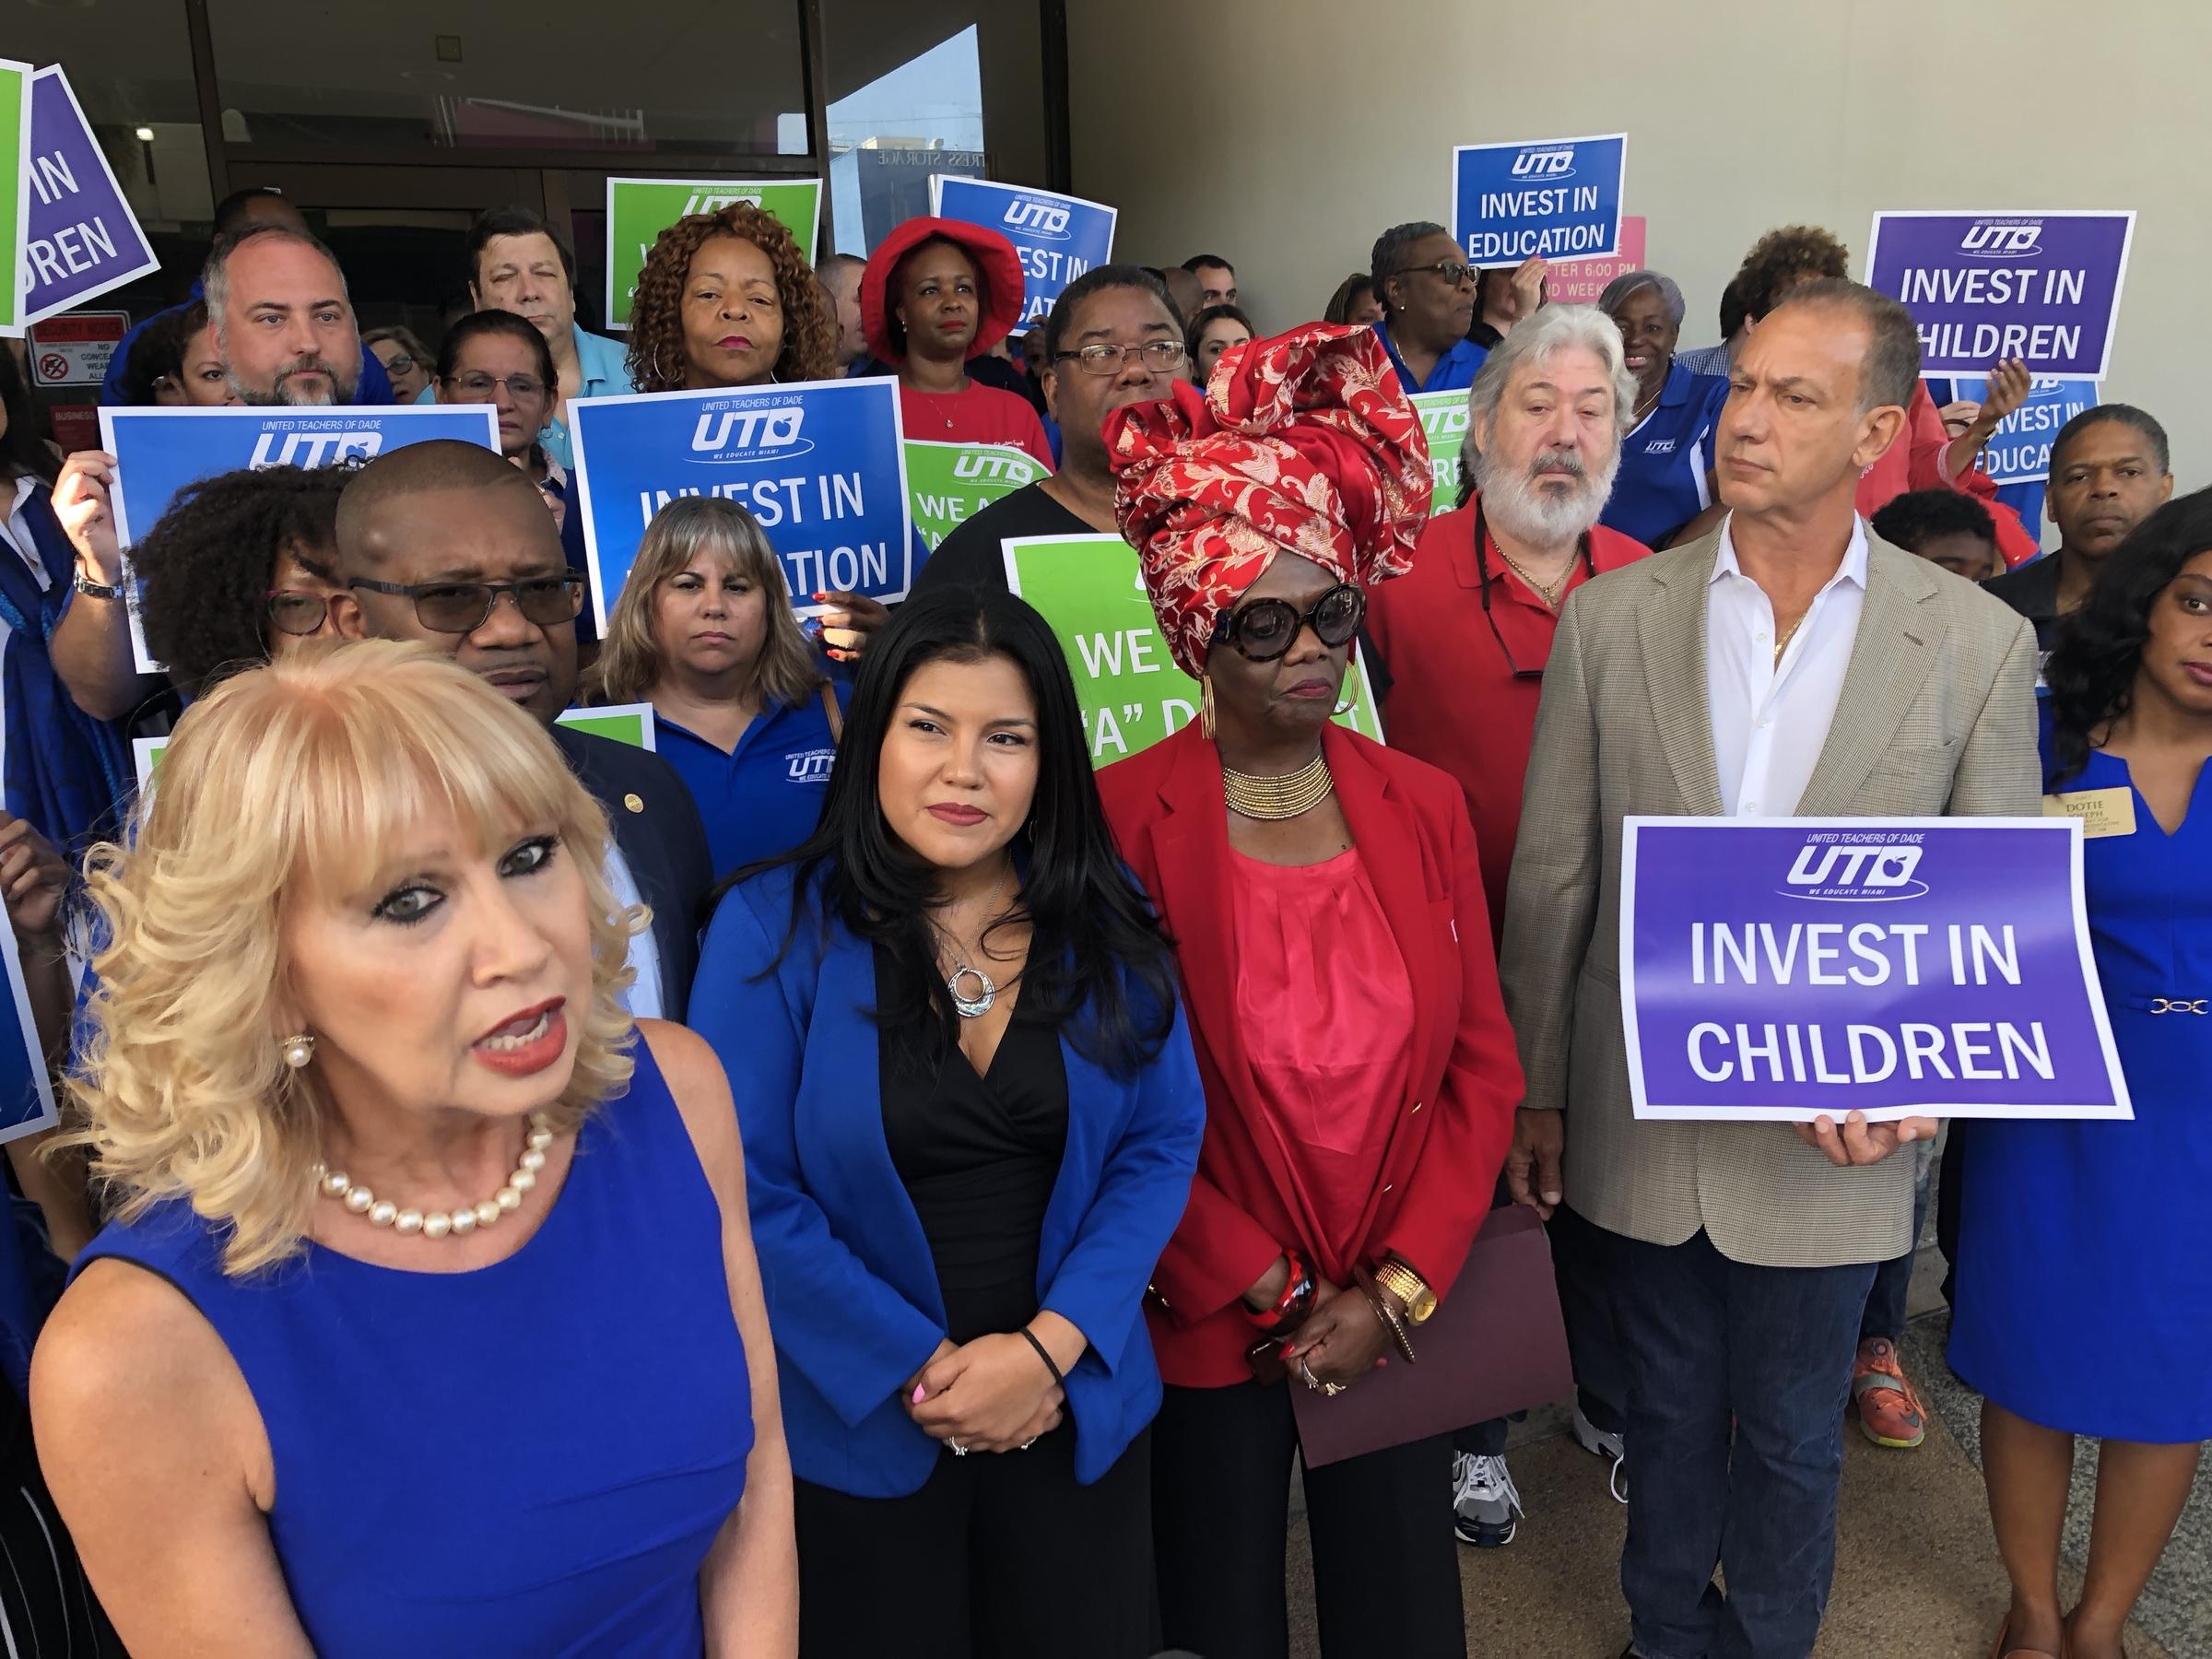 Miami-Dade School Board Advances Property Tax Hike To Pay